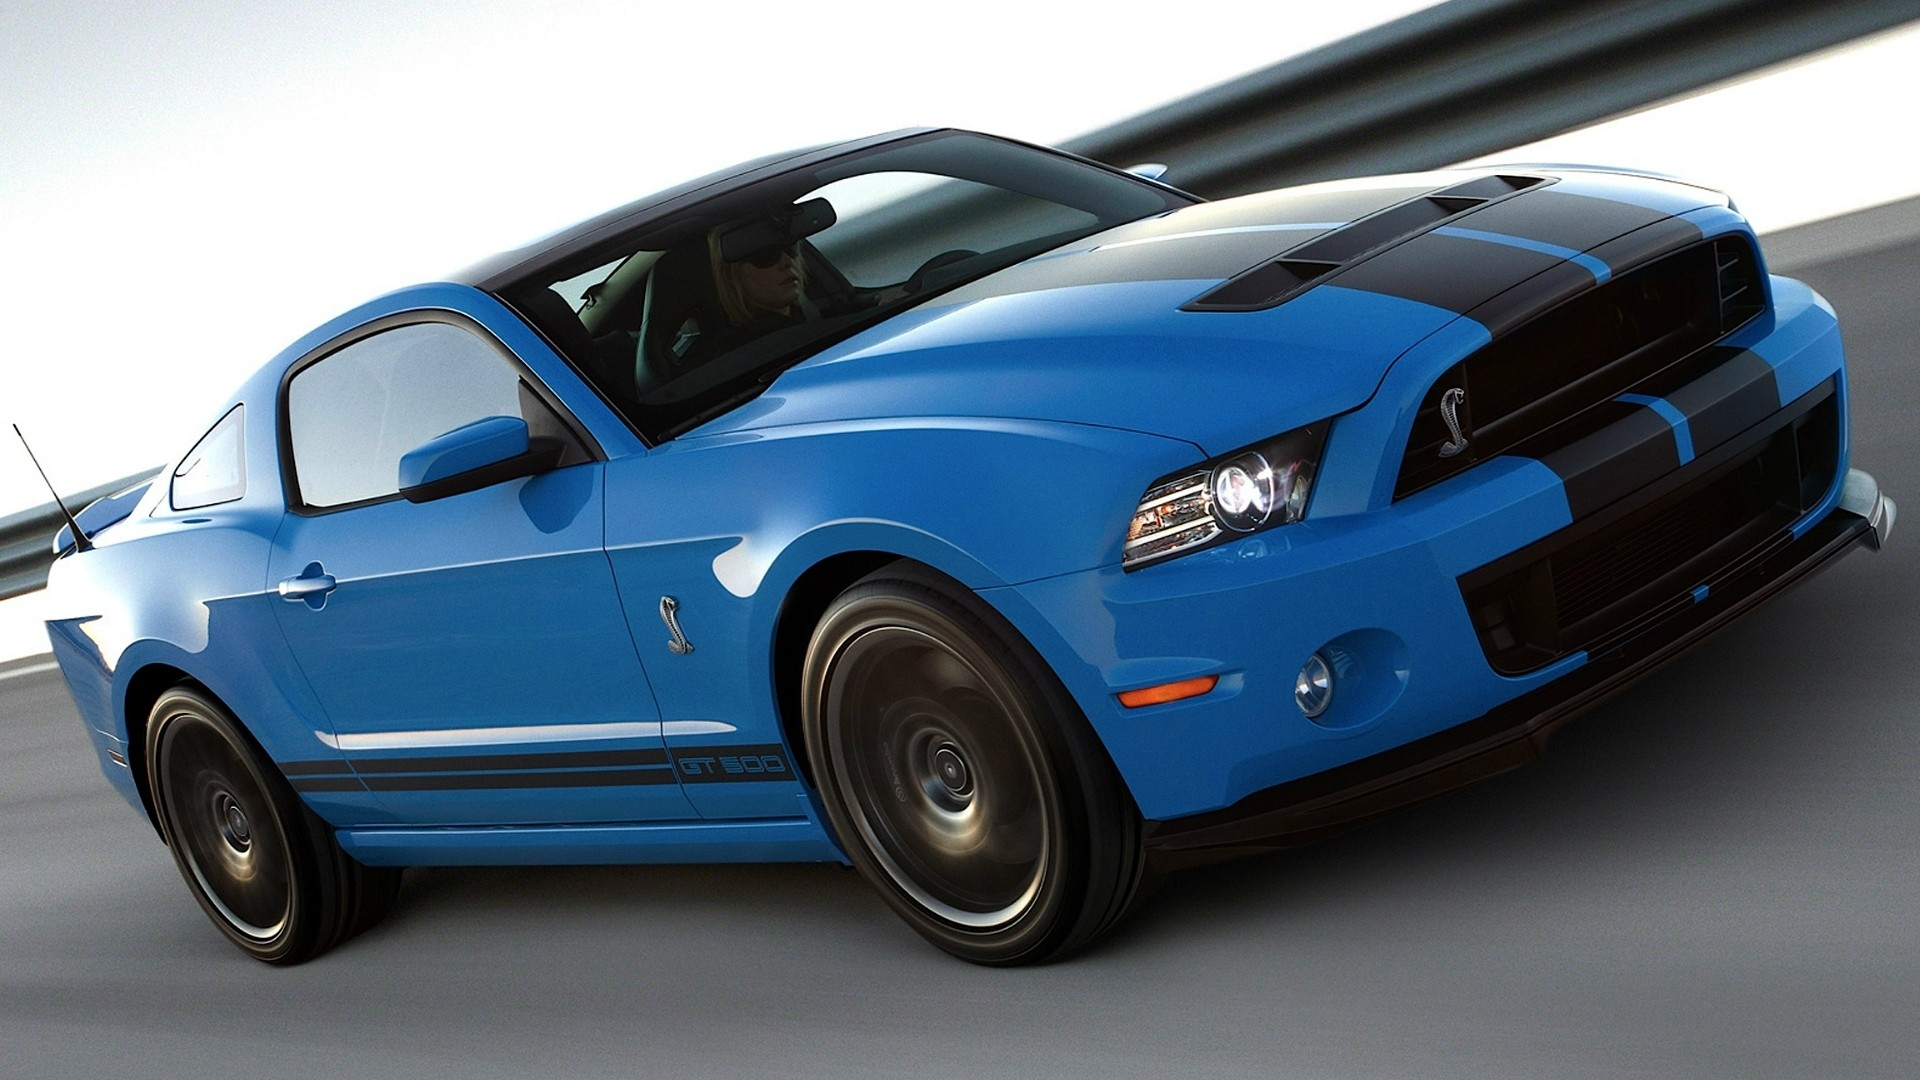 Ford Mustang Shelby GT500 HD Wallpaper 2013 Ford Mustang Shelby GT500 1920x1080